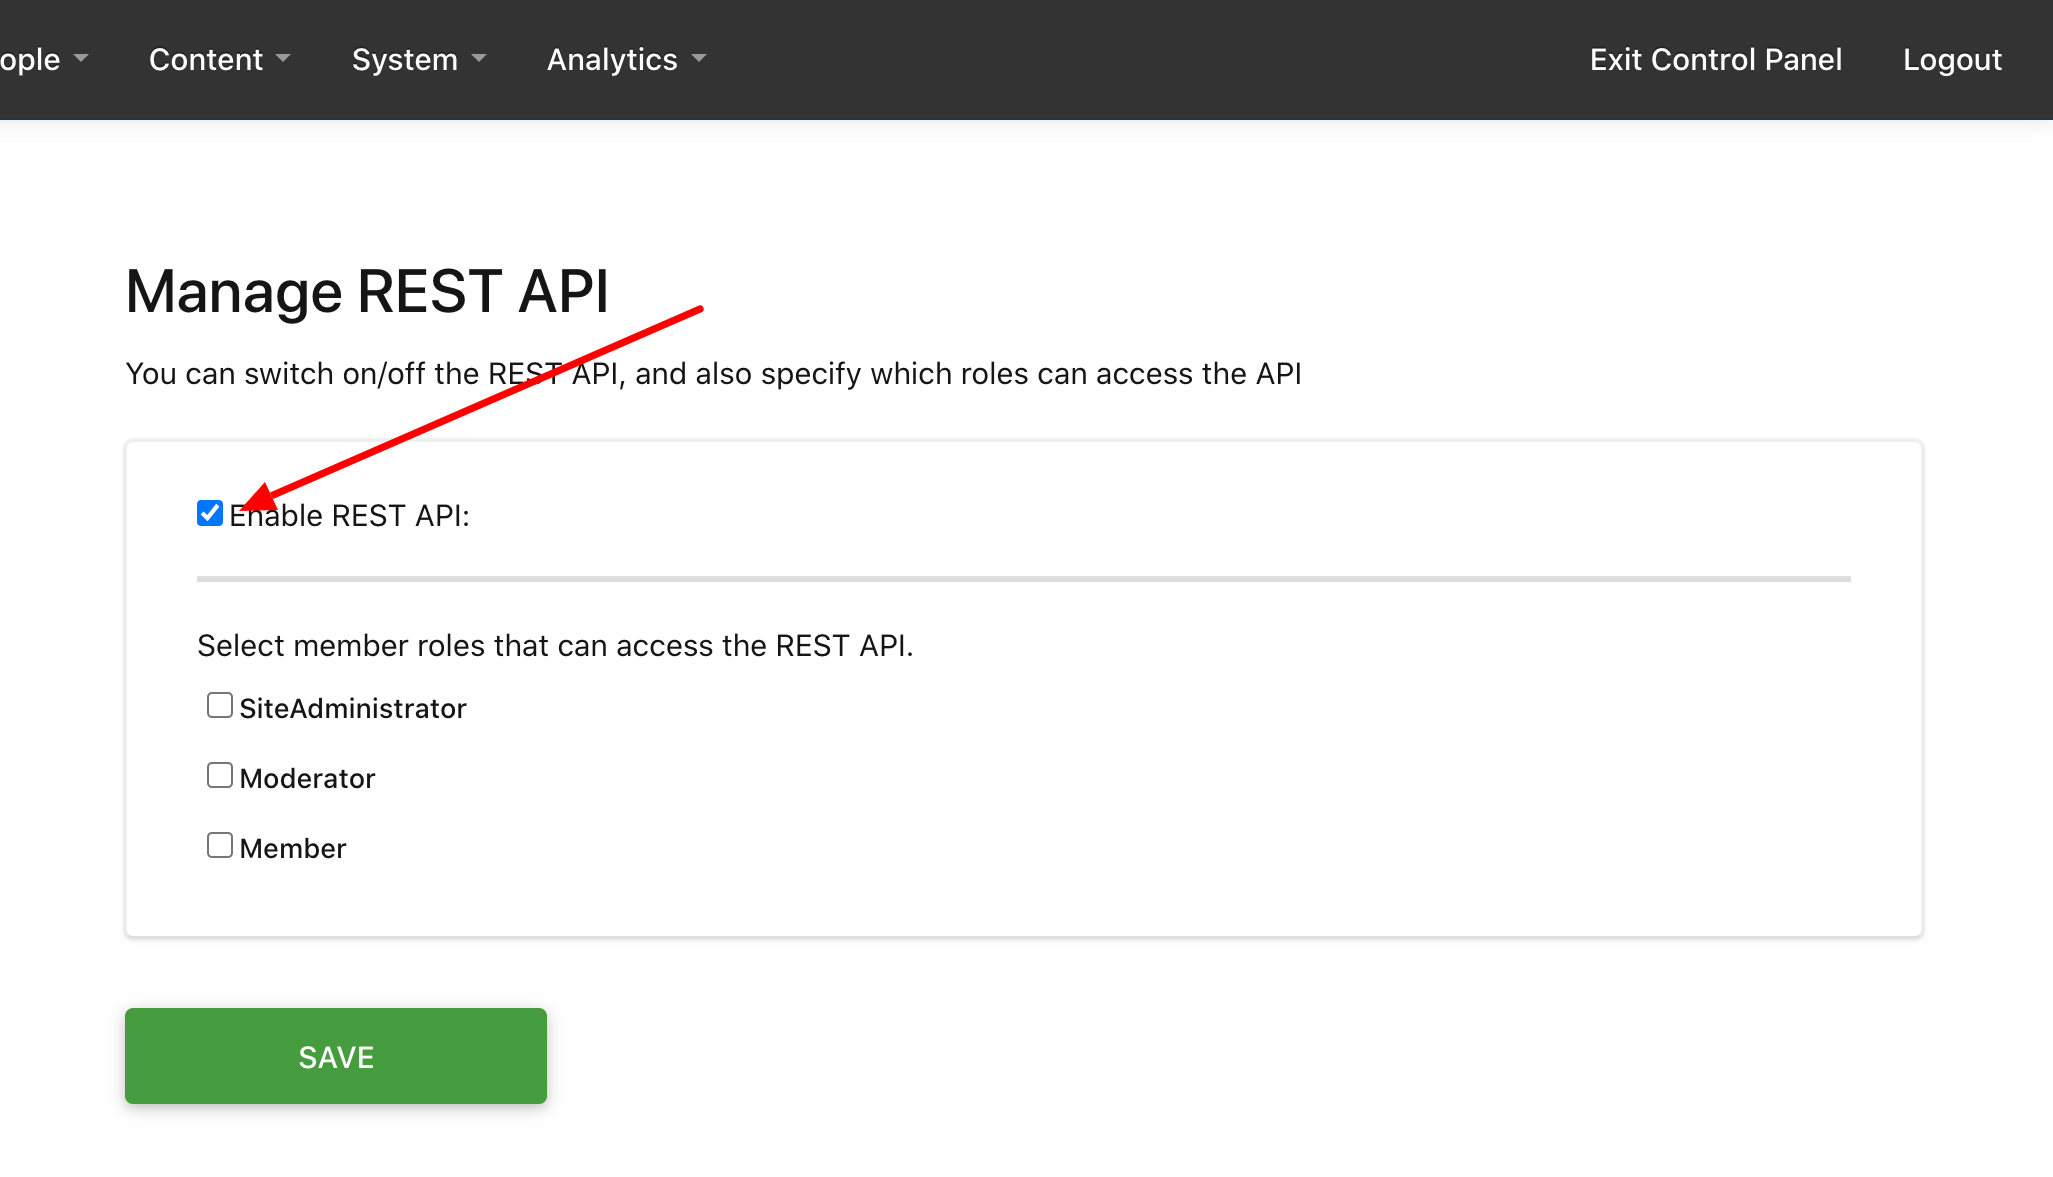 Check Enable REST API